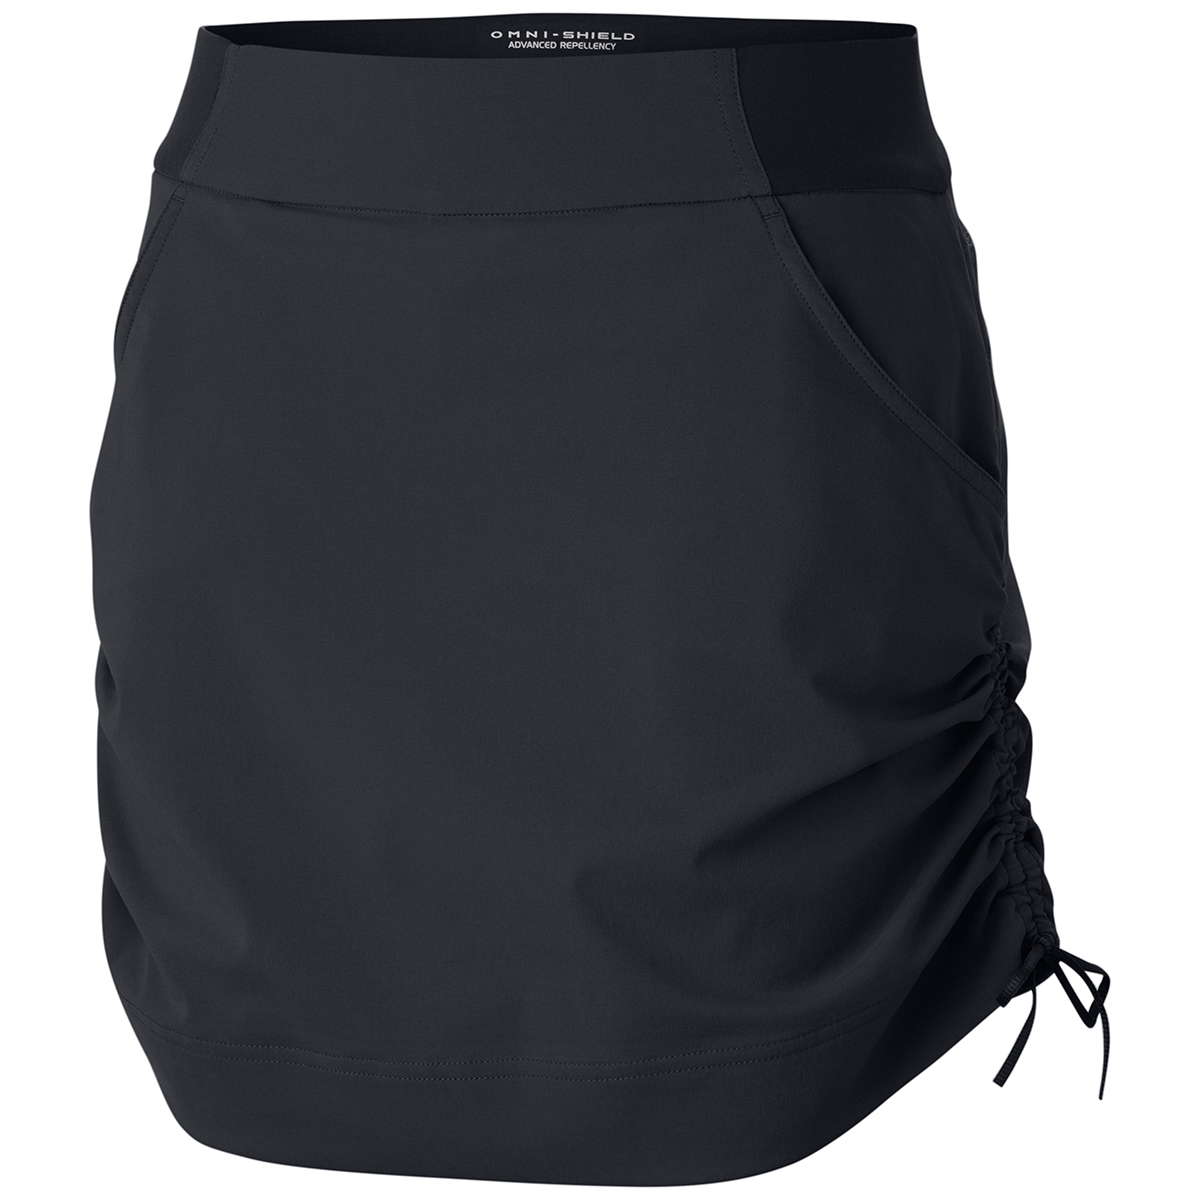 Columbia Women's Anytime Casual Skort - Black, XS